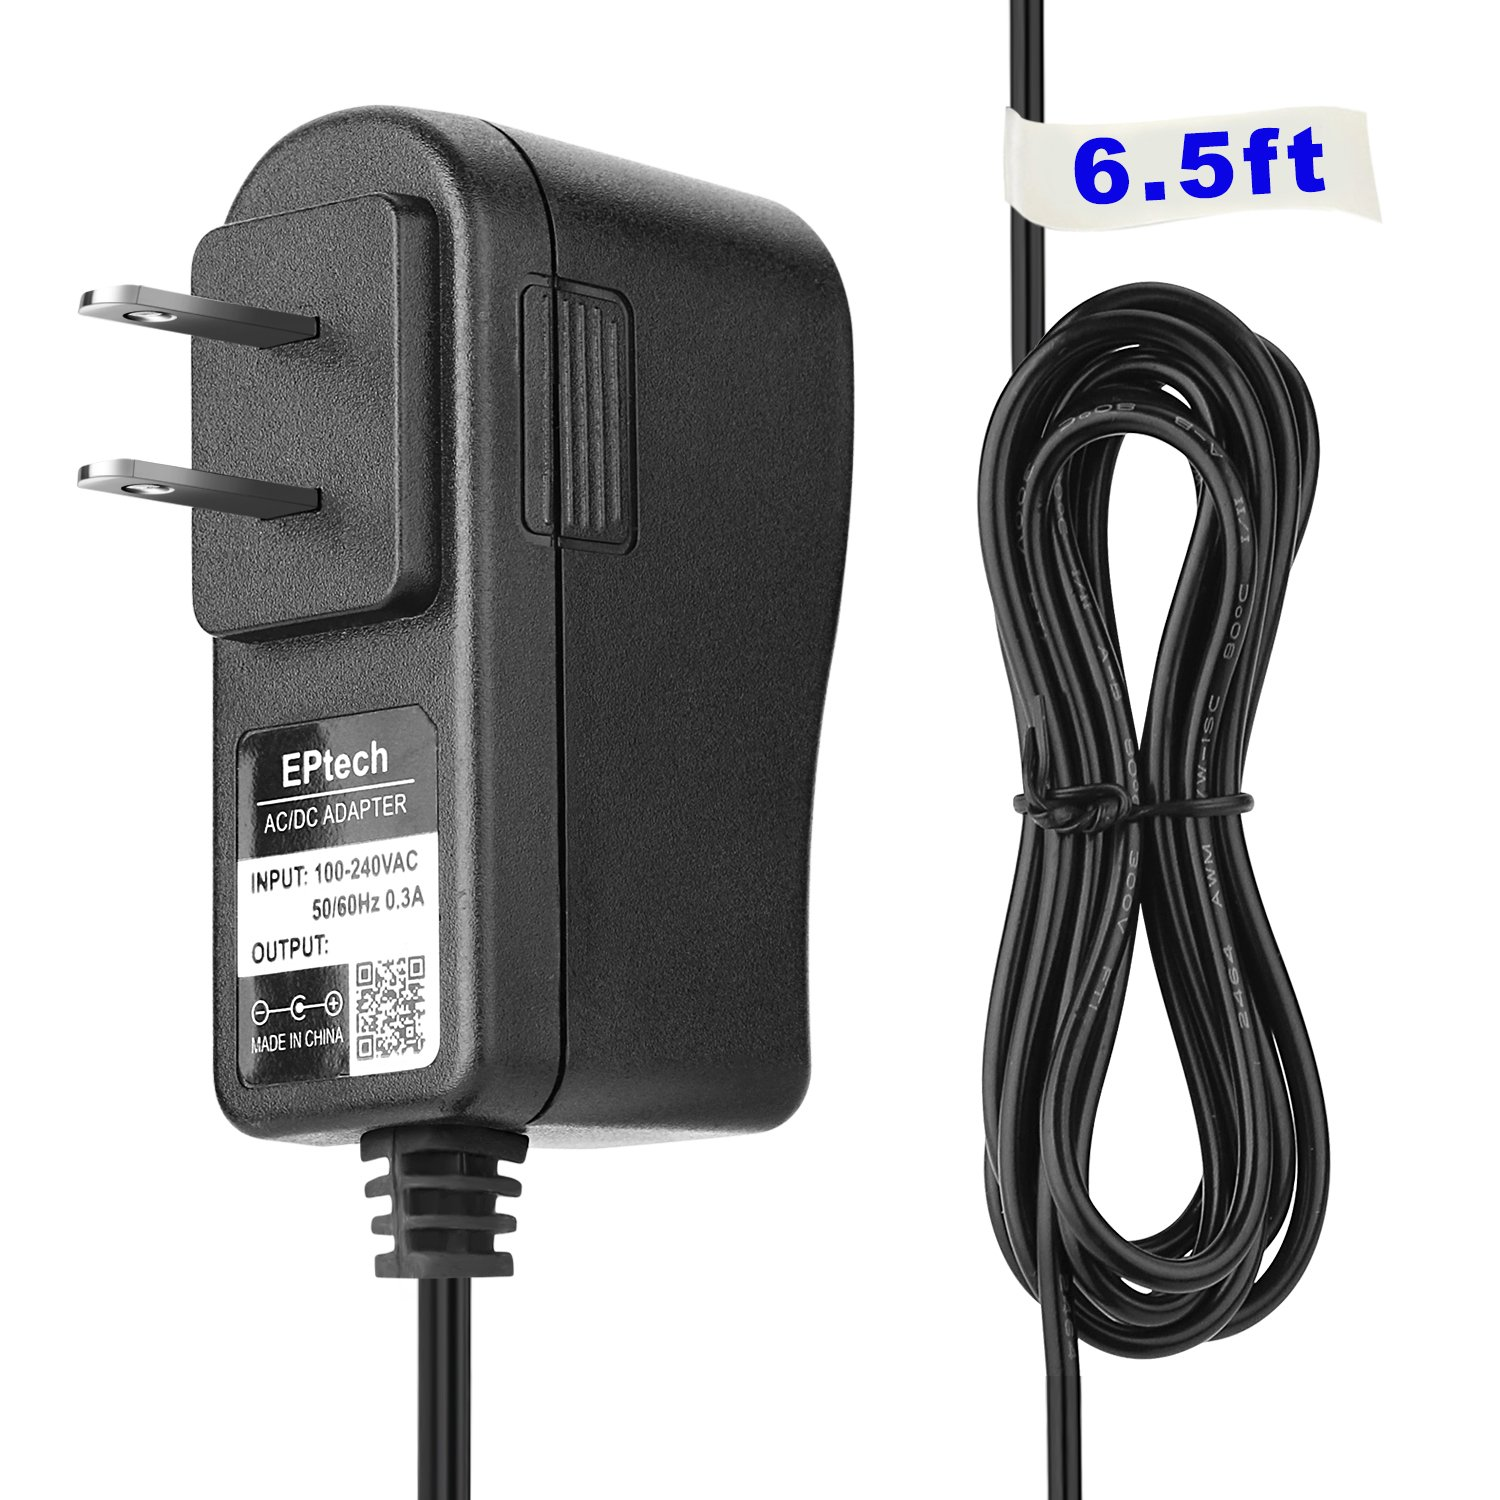 Amazon.com: 6.5FT AC DC adapter for Sony NTM-910 NTM-910YLW BabyCall Baby Call Sound Sensor Nursery Baby Monitor (Parent Unit): Computers & Accessories